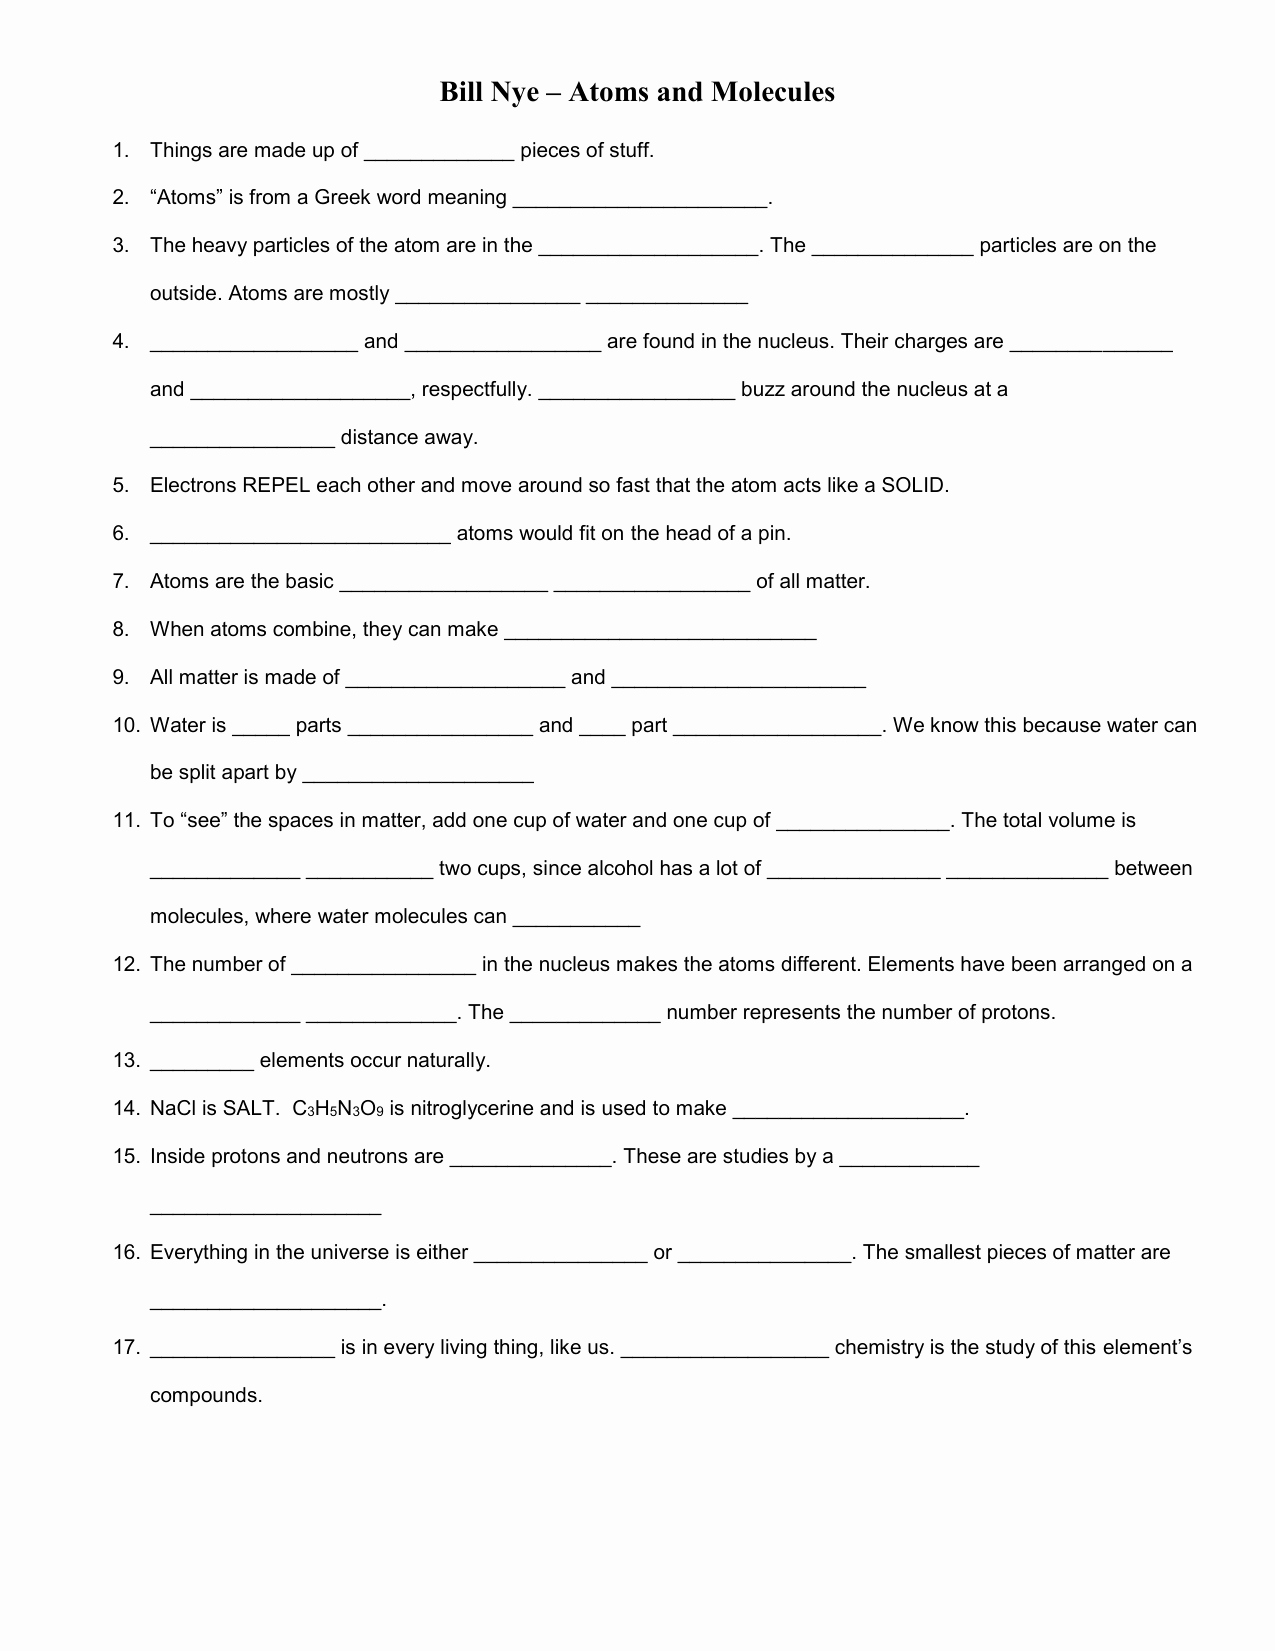 Bill Nye atoms Worksheet Luxury Bill Nye – atoms and Molecules Video Worksheet